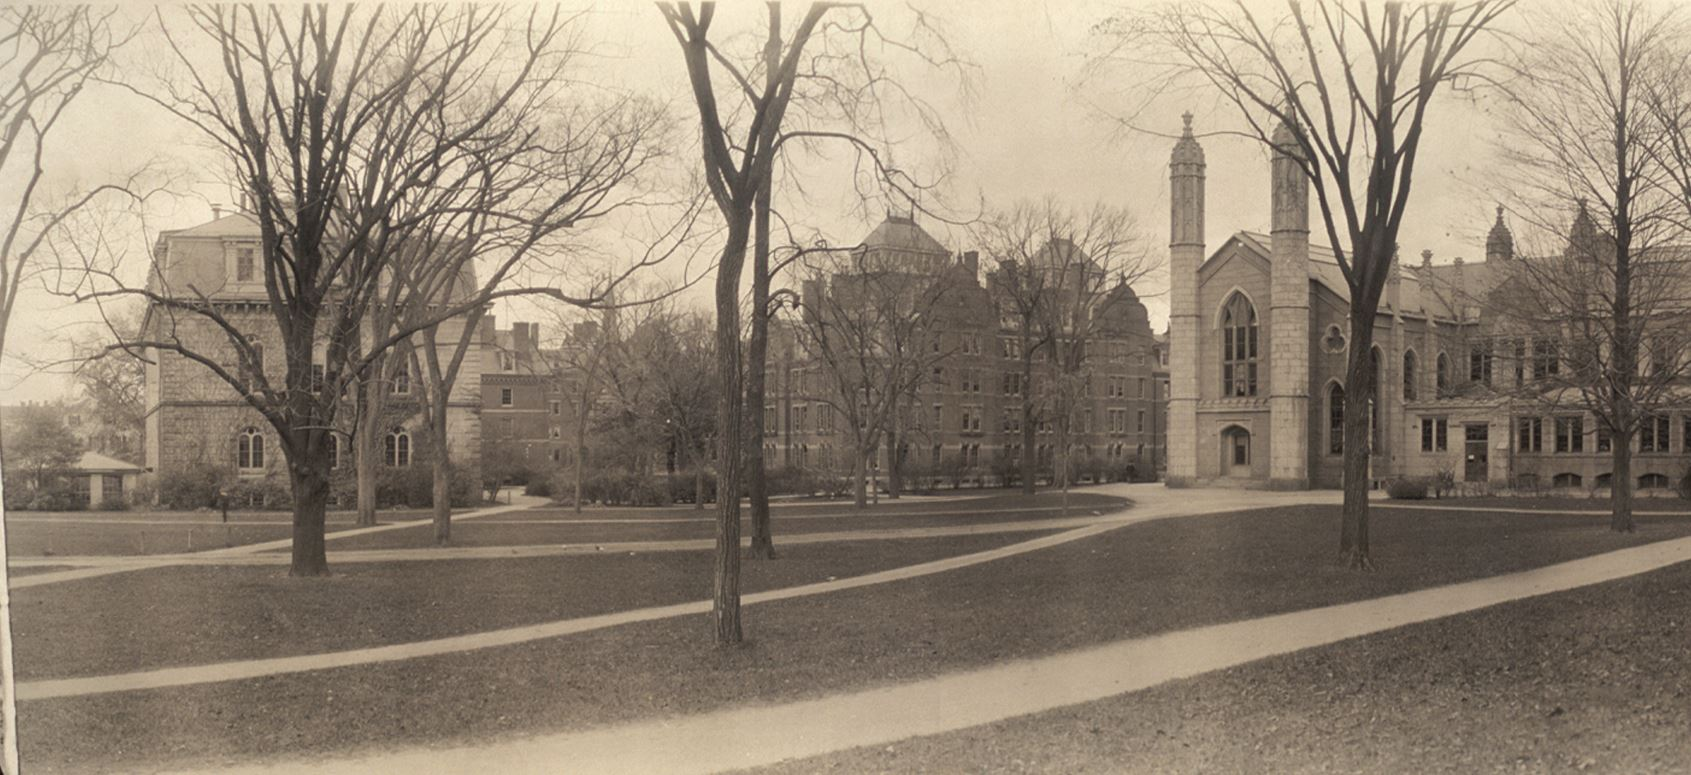 Weld Hall, Havard Yard, 1910, Haines Photo Co. (Source: Library of Congress)